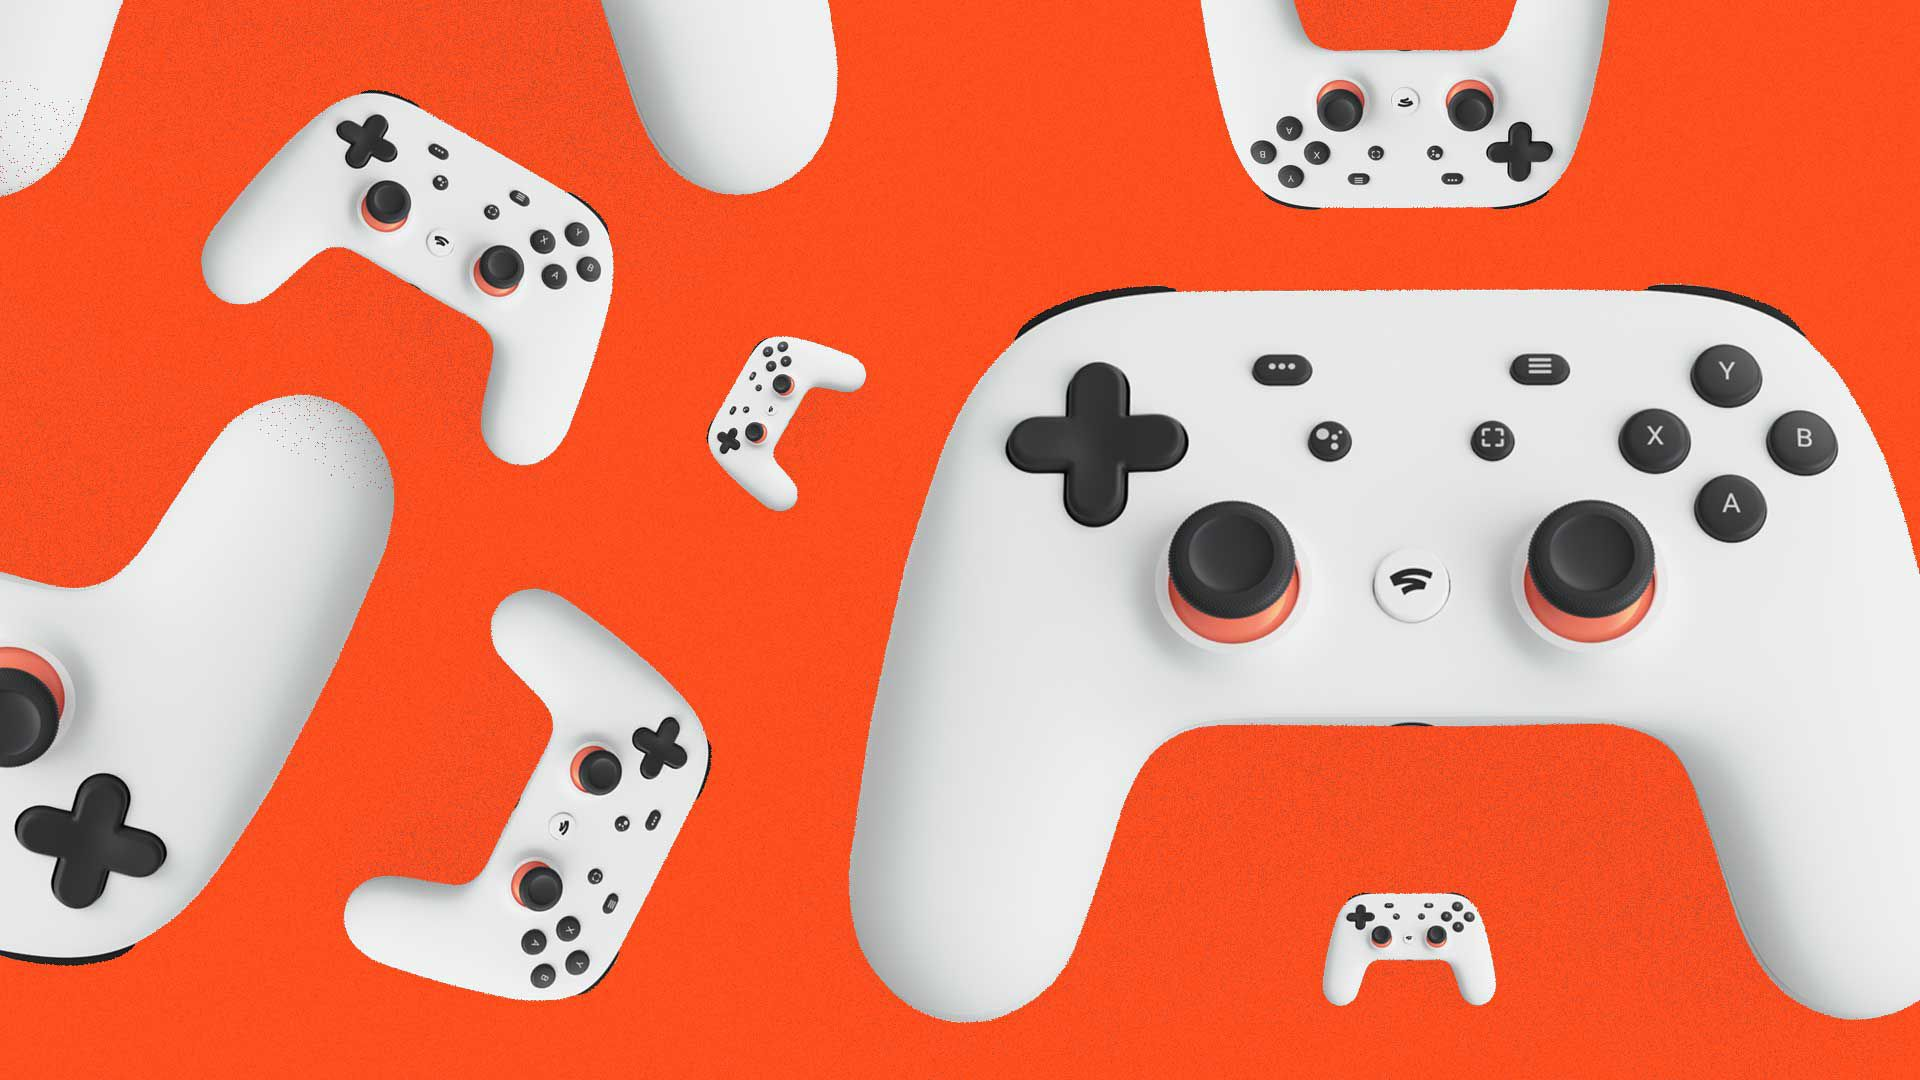 Google's stadia streaming system